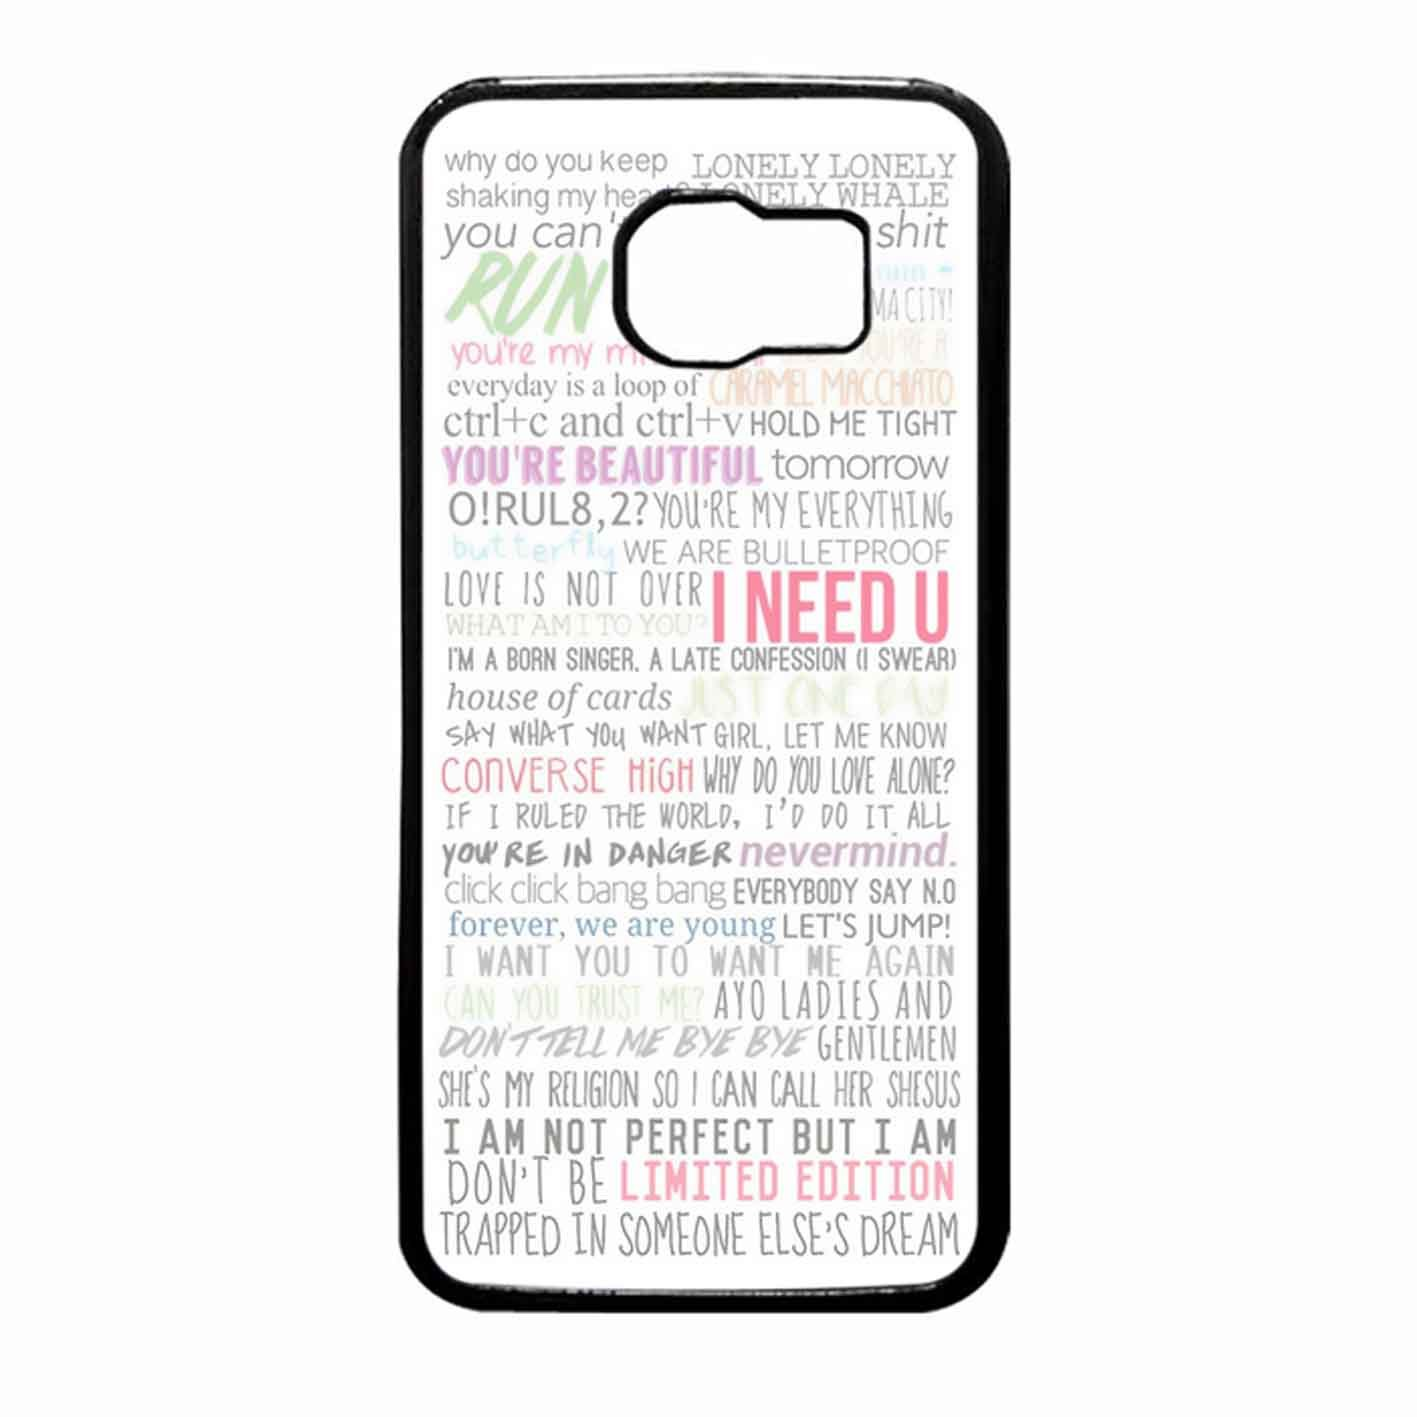 Bts lyrics case samsung galaxy note 4 8944577519690 amazon bts lyrics case samsung galaxy note 4 8944577519690 amazon books nvjuhfo Image collections